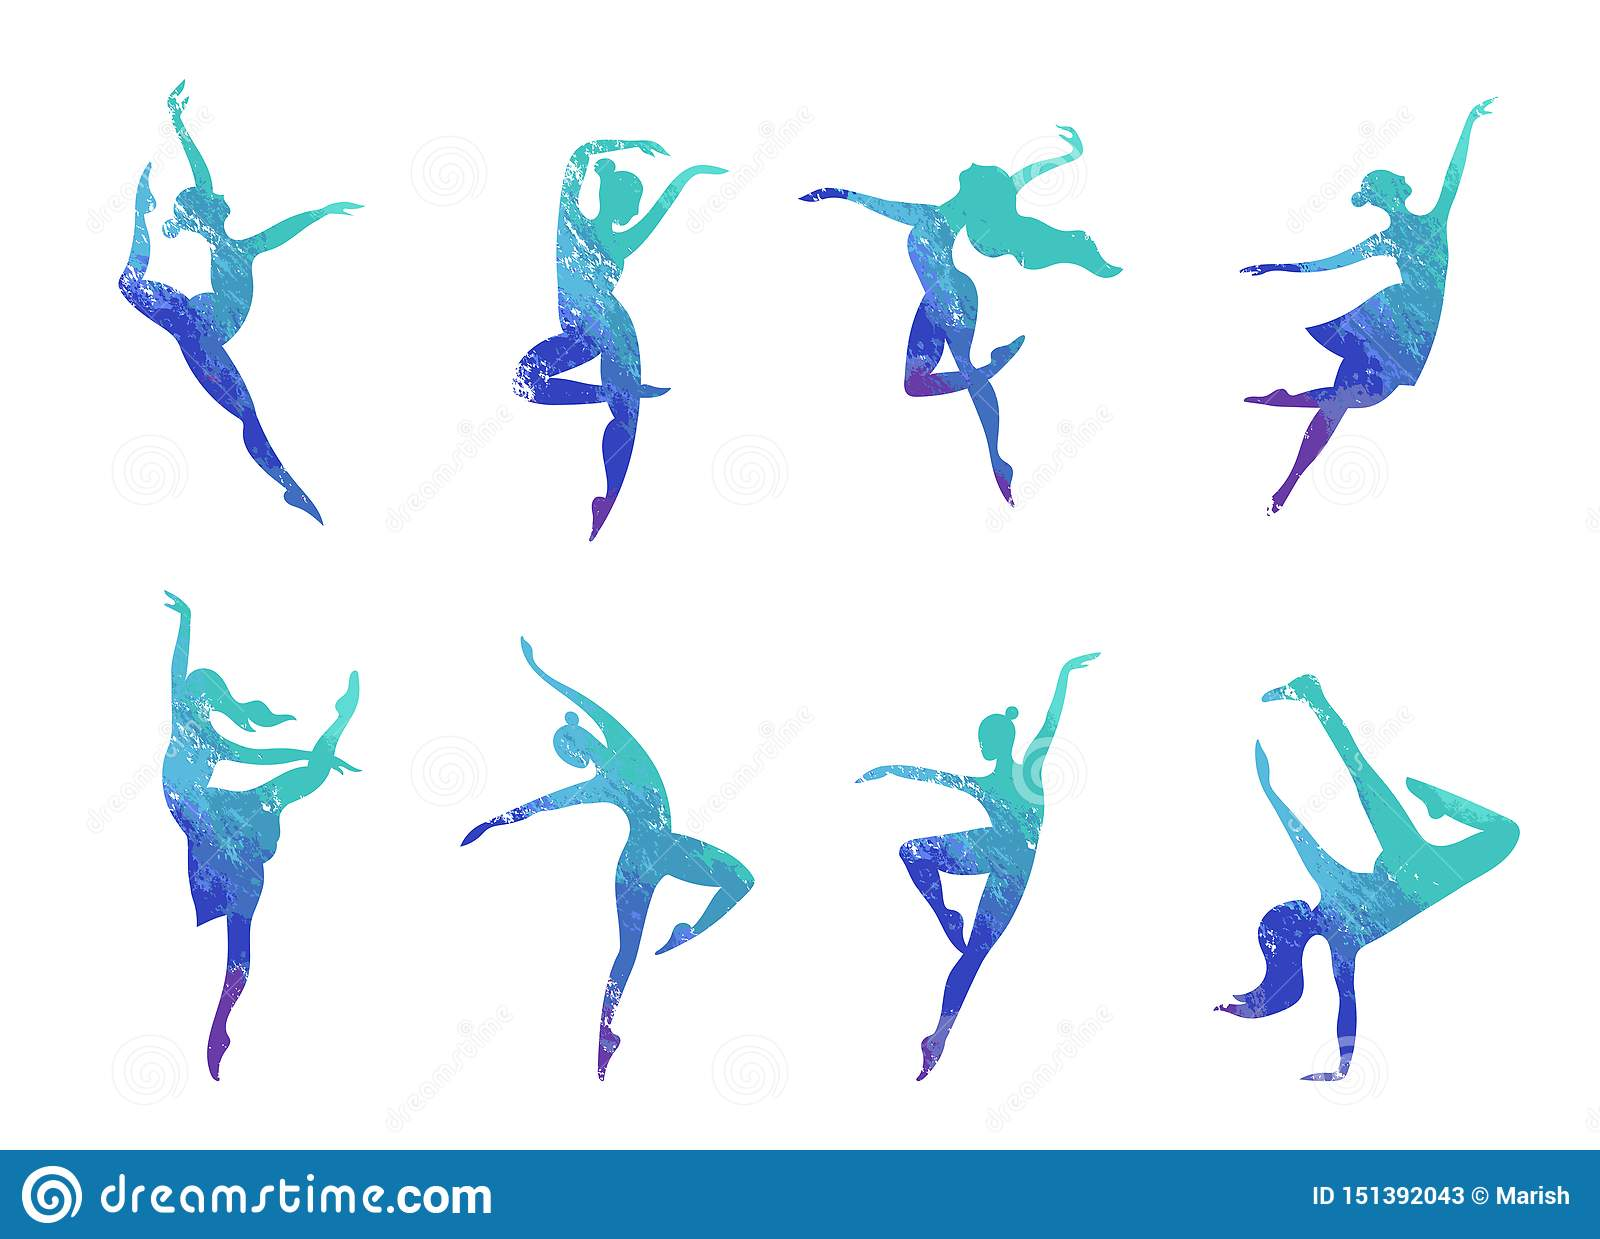 Colorful Dance Silhouette Illustration Stock Vector Illustration Of Graphic Drawn 151392043